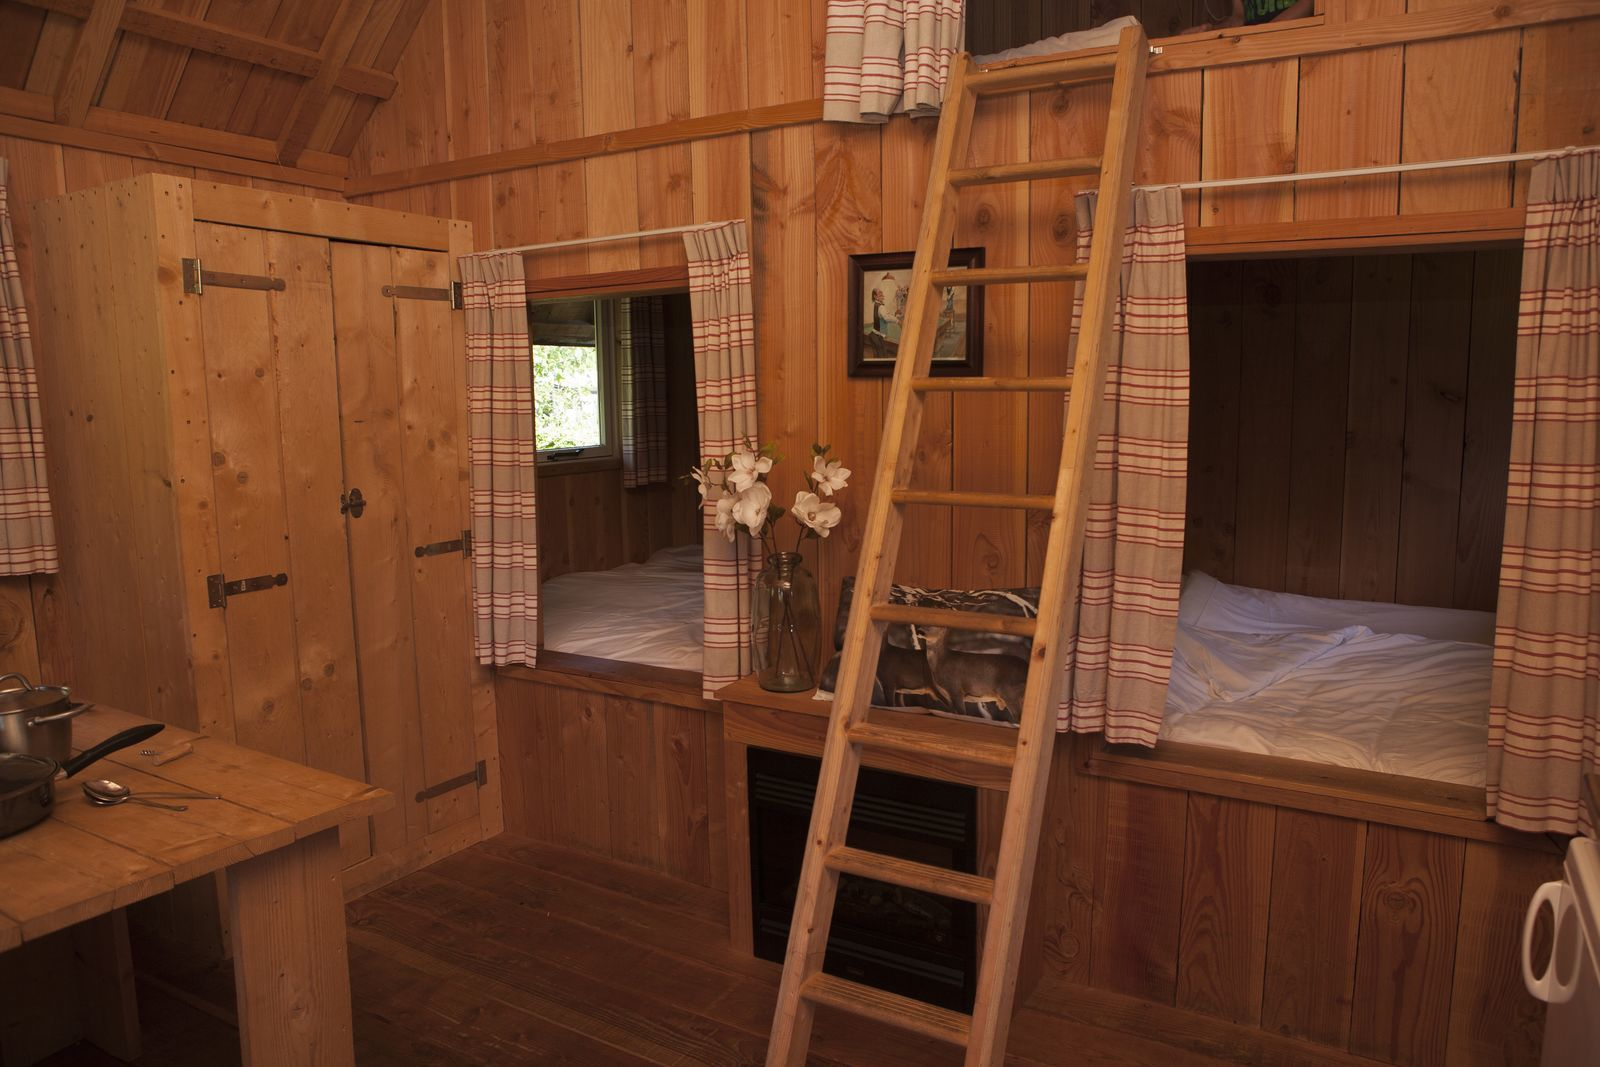 6-person Hiking Cabin.